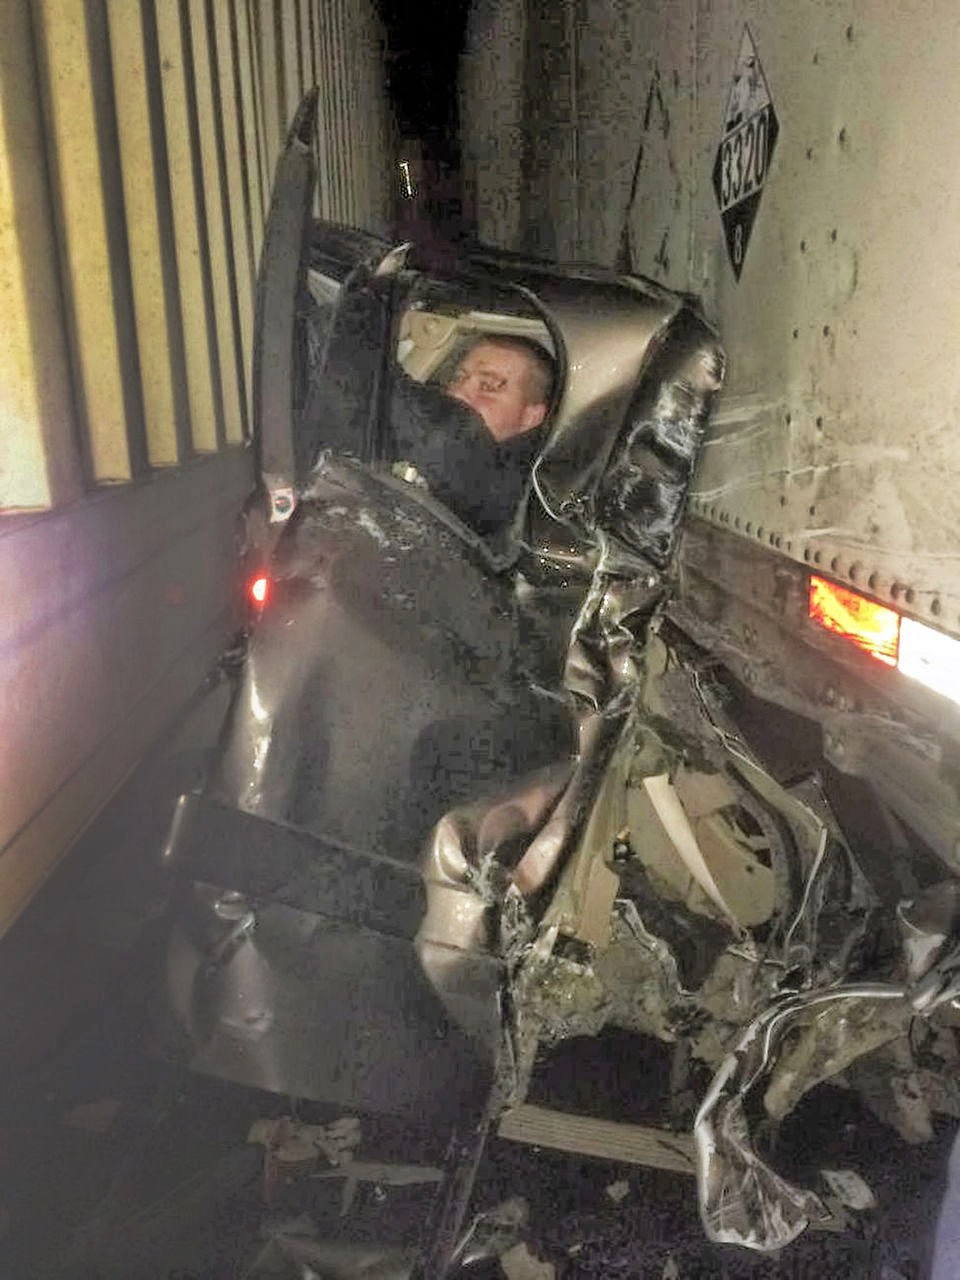 http://www.oregonlive.com/pacific-northwest-news/index.ssf/2015/01/interstate_84_semi-truck_crash_1.html#incart_2box